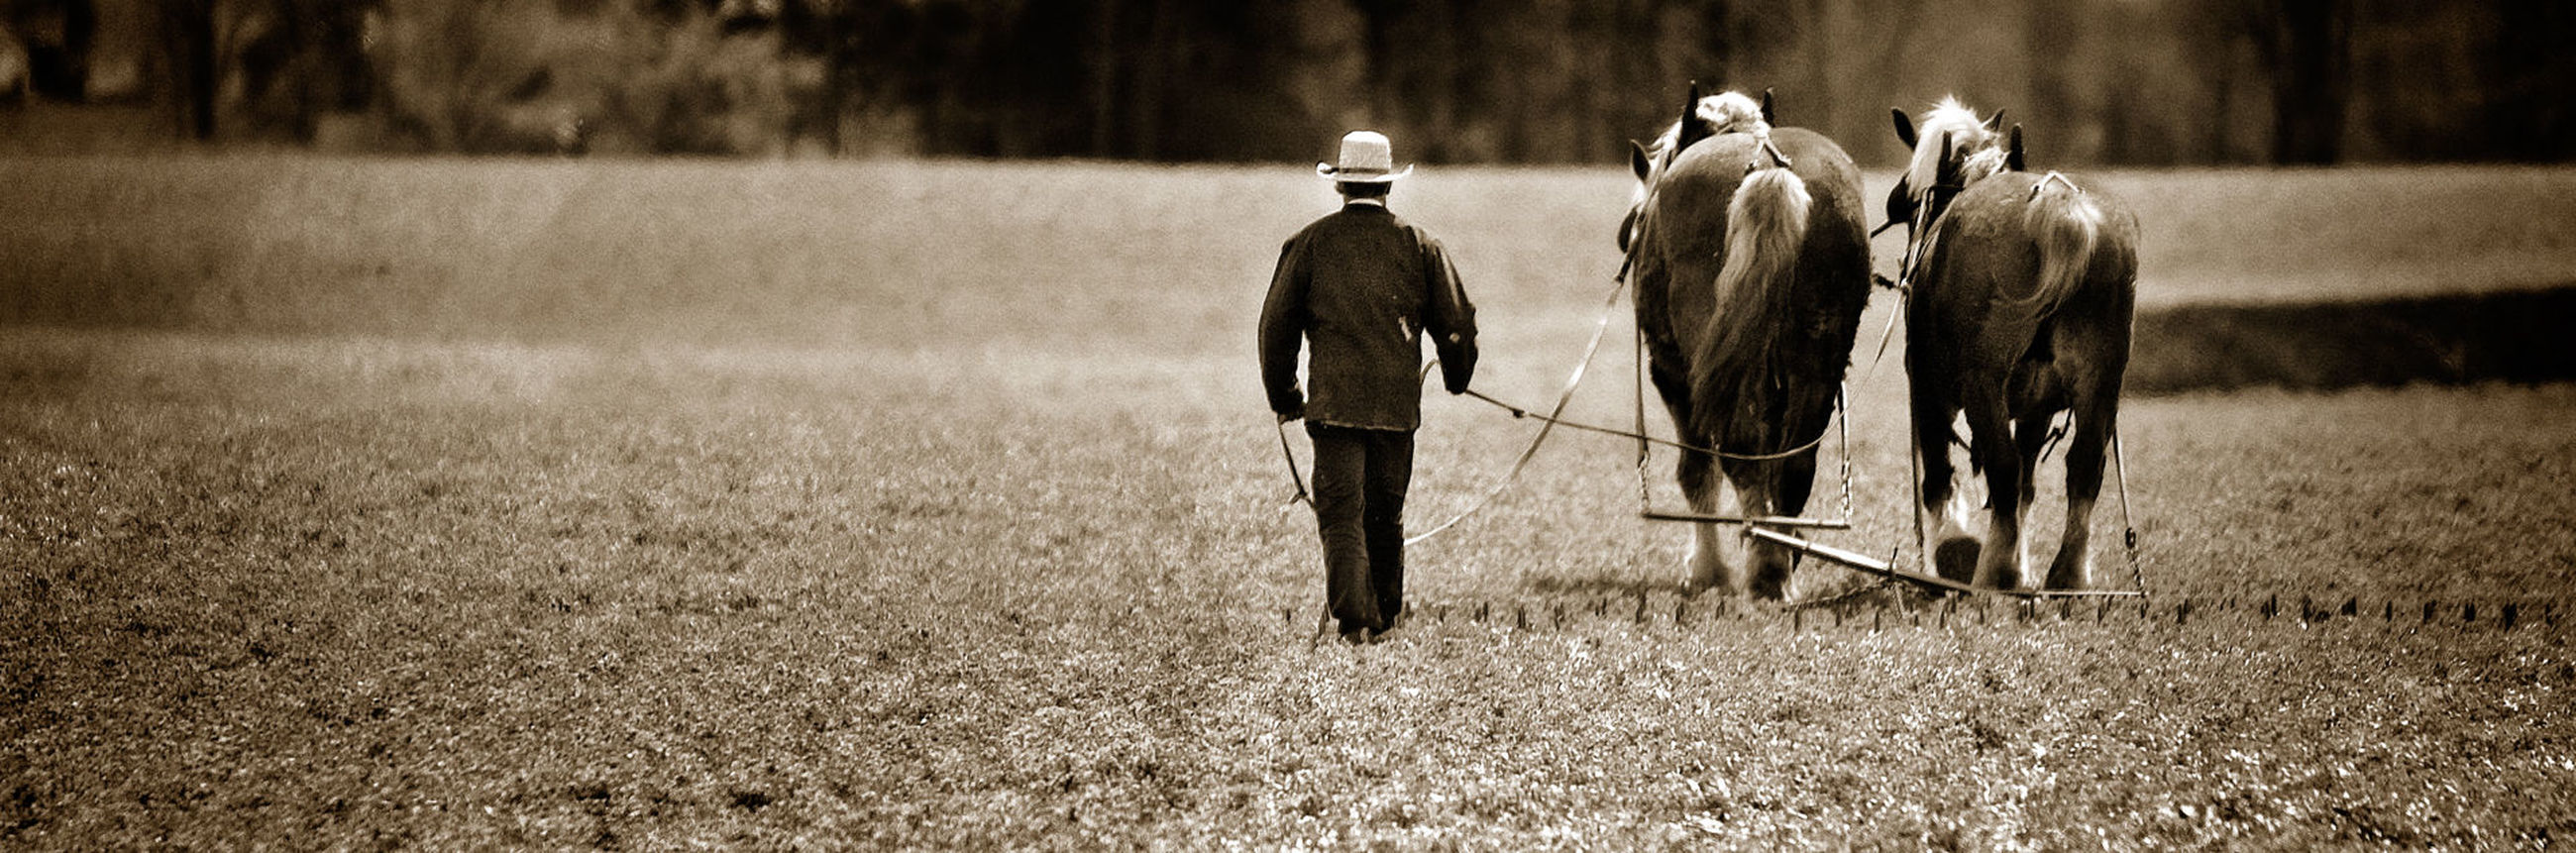 men, rear view, standing, full length, field, lifestyles, walking, leisure activity, person, grass, horse, togetherness, casual clothing, outdoors, domestic animals, landscape, day